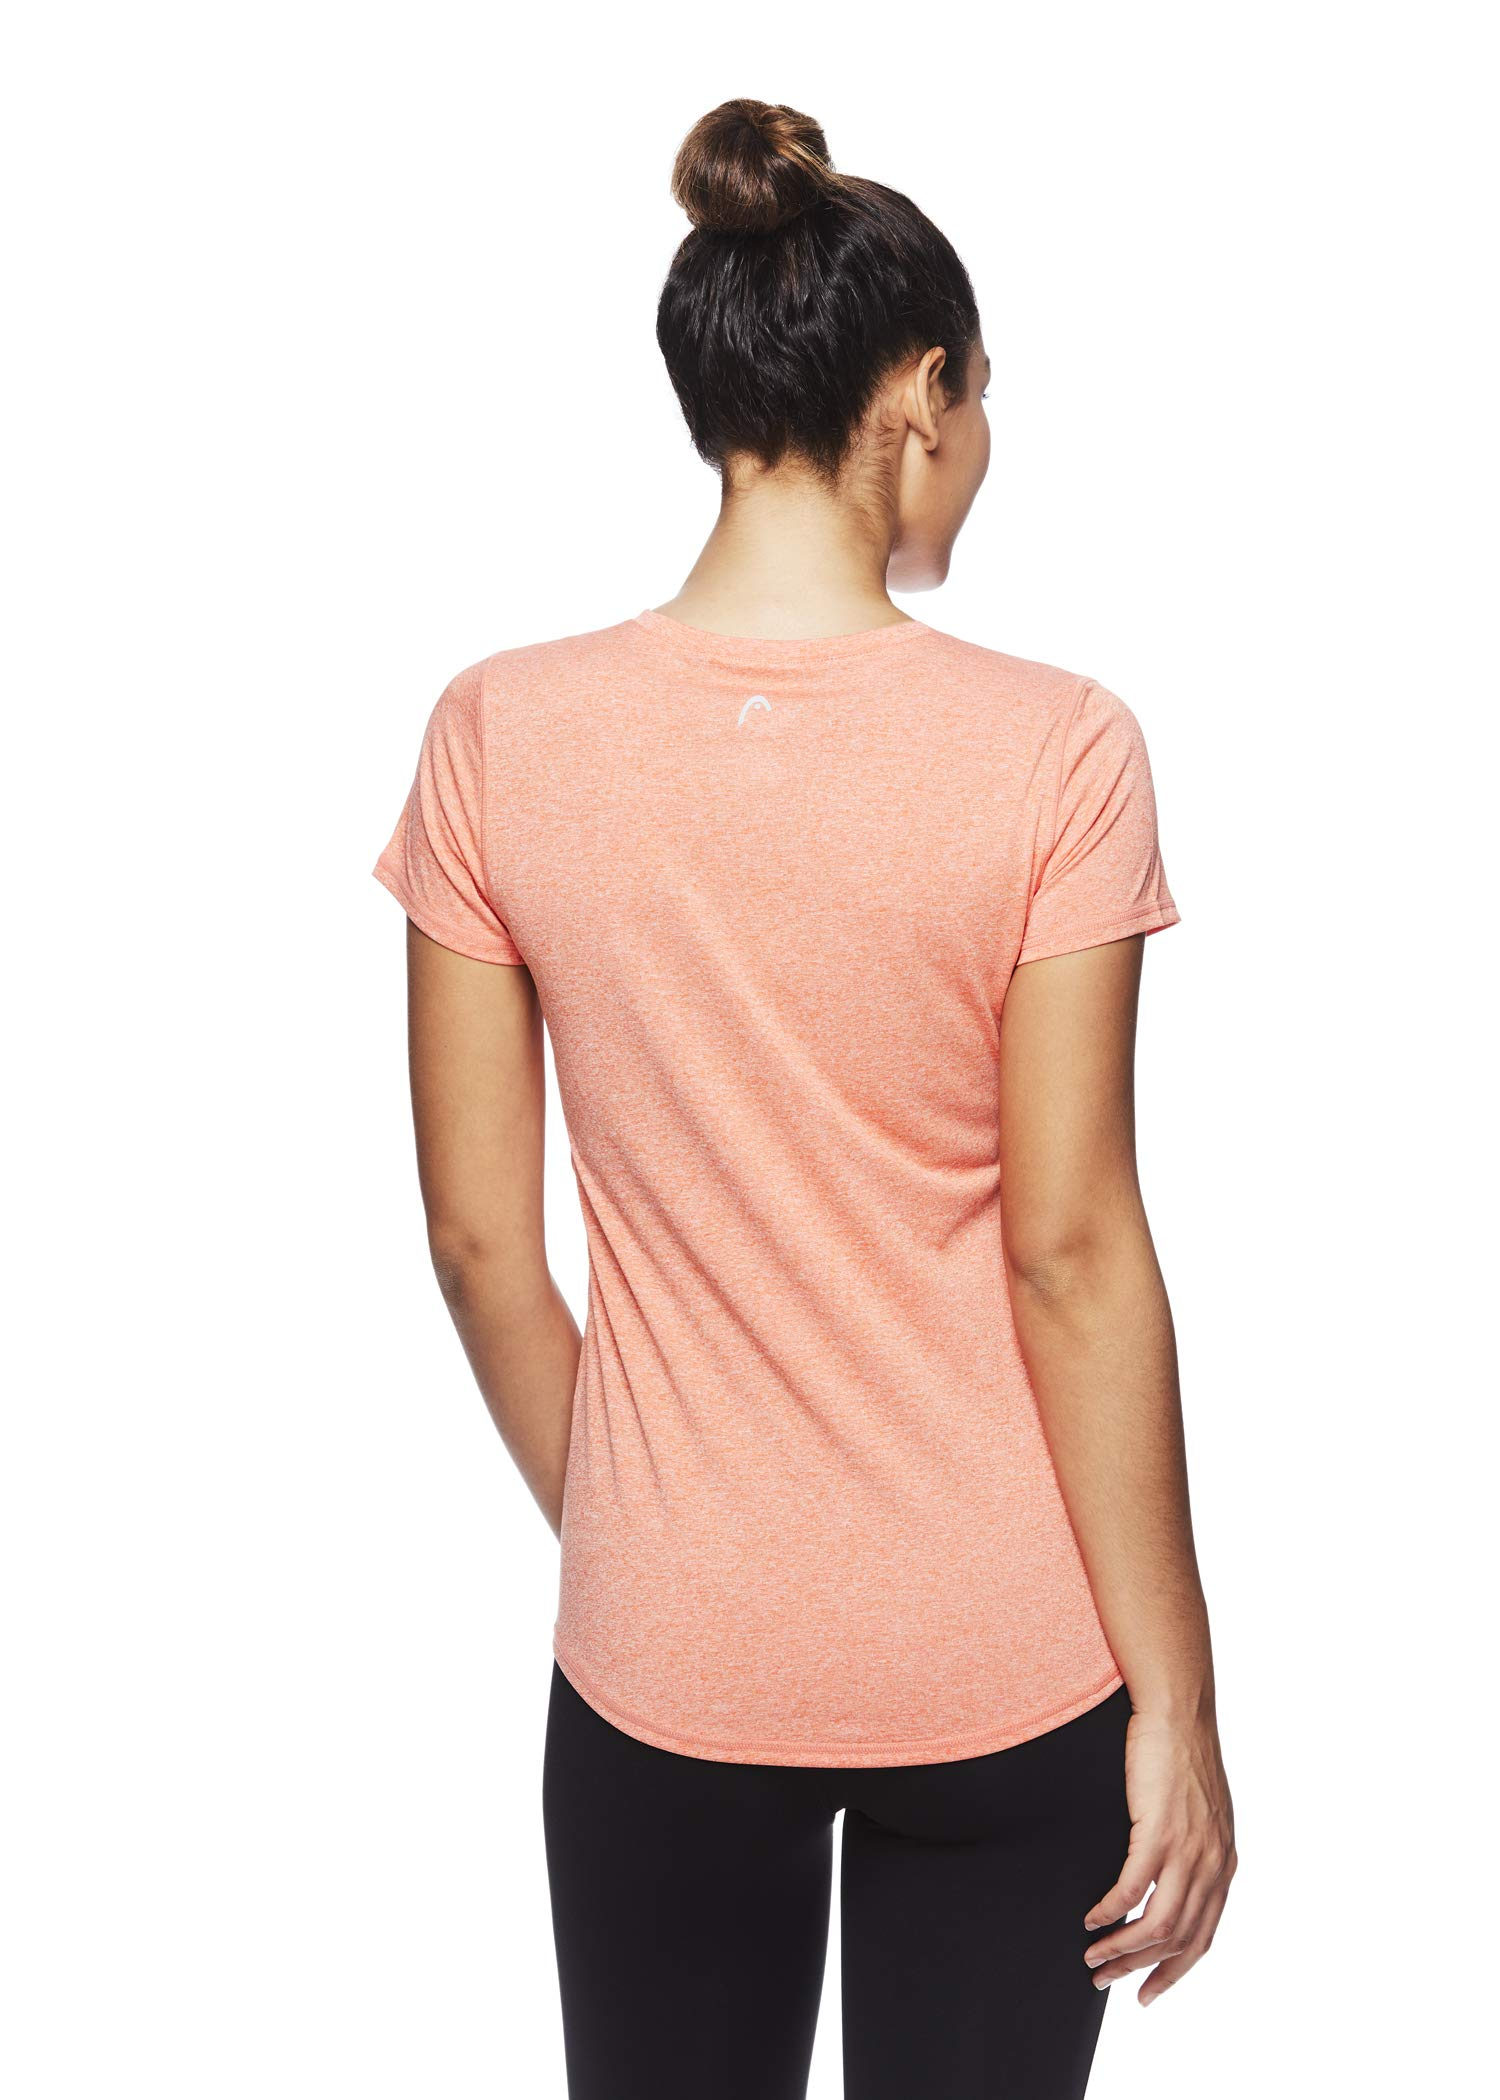 HEAD Women's Brianna Shirred Short Sleeve Workout T-Shirt - Marled Performance Crew Neck Activewear Top - Brianna Peach Echo Heather, X-Small by HEAD (Image #3)